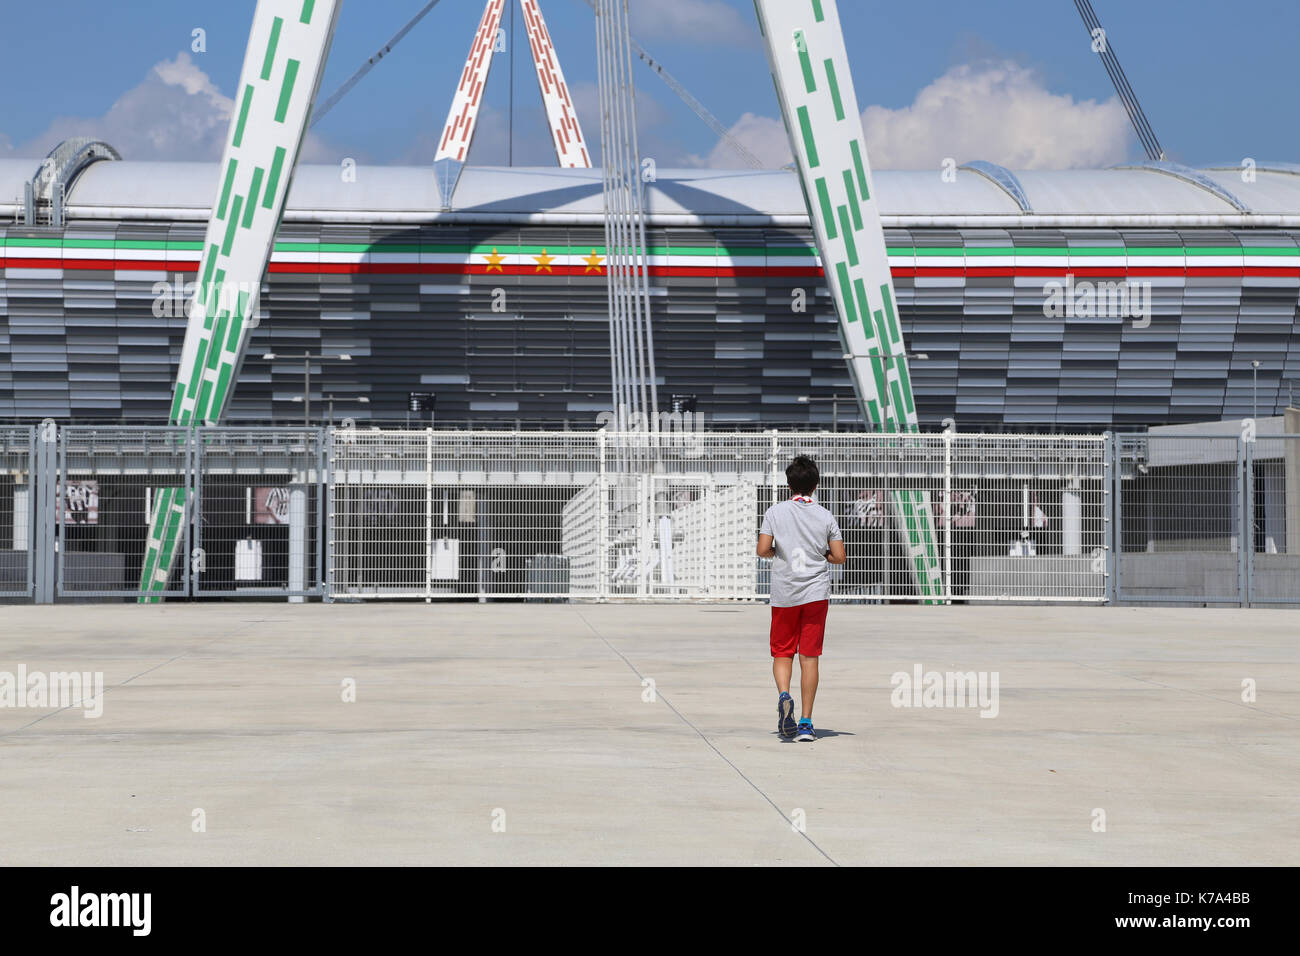 soccer stadium construction italy high resolution stock photography and images alamy alamy